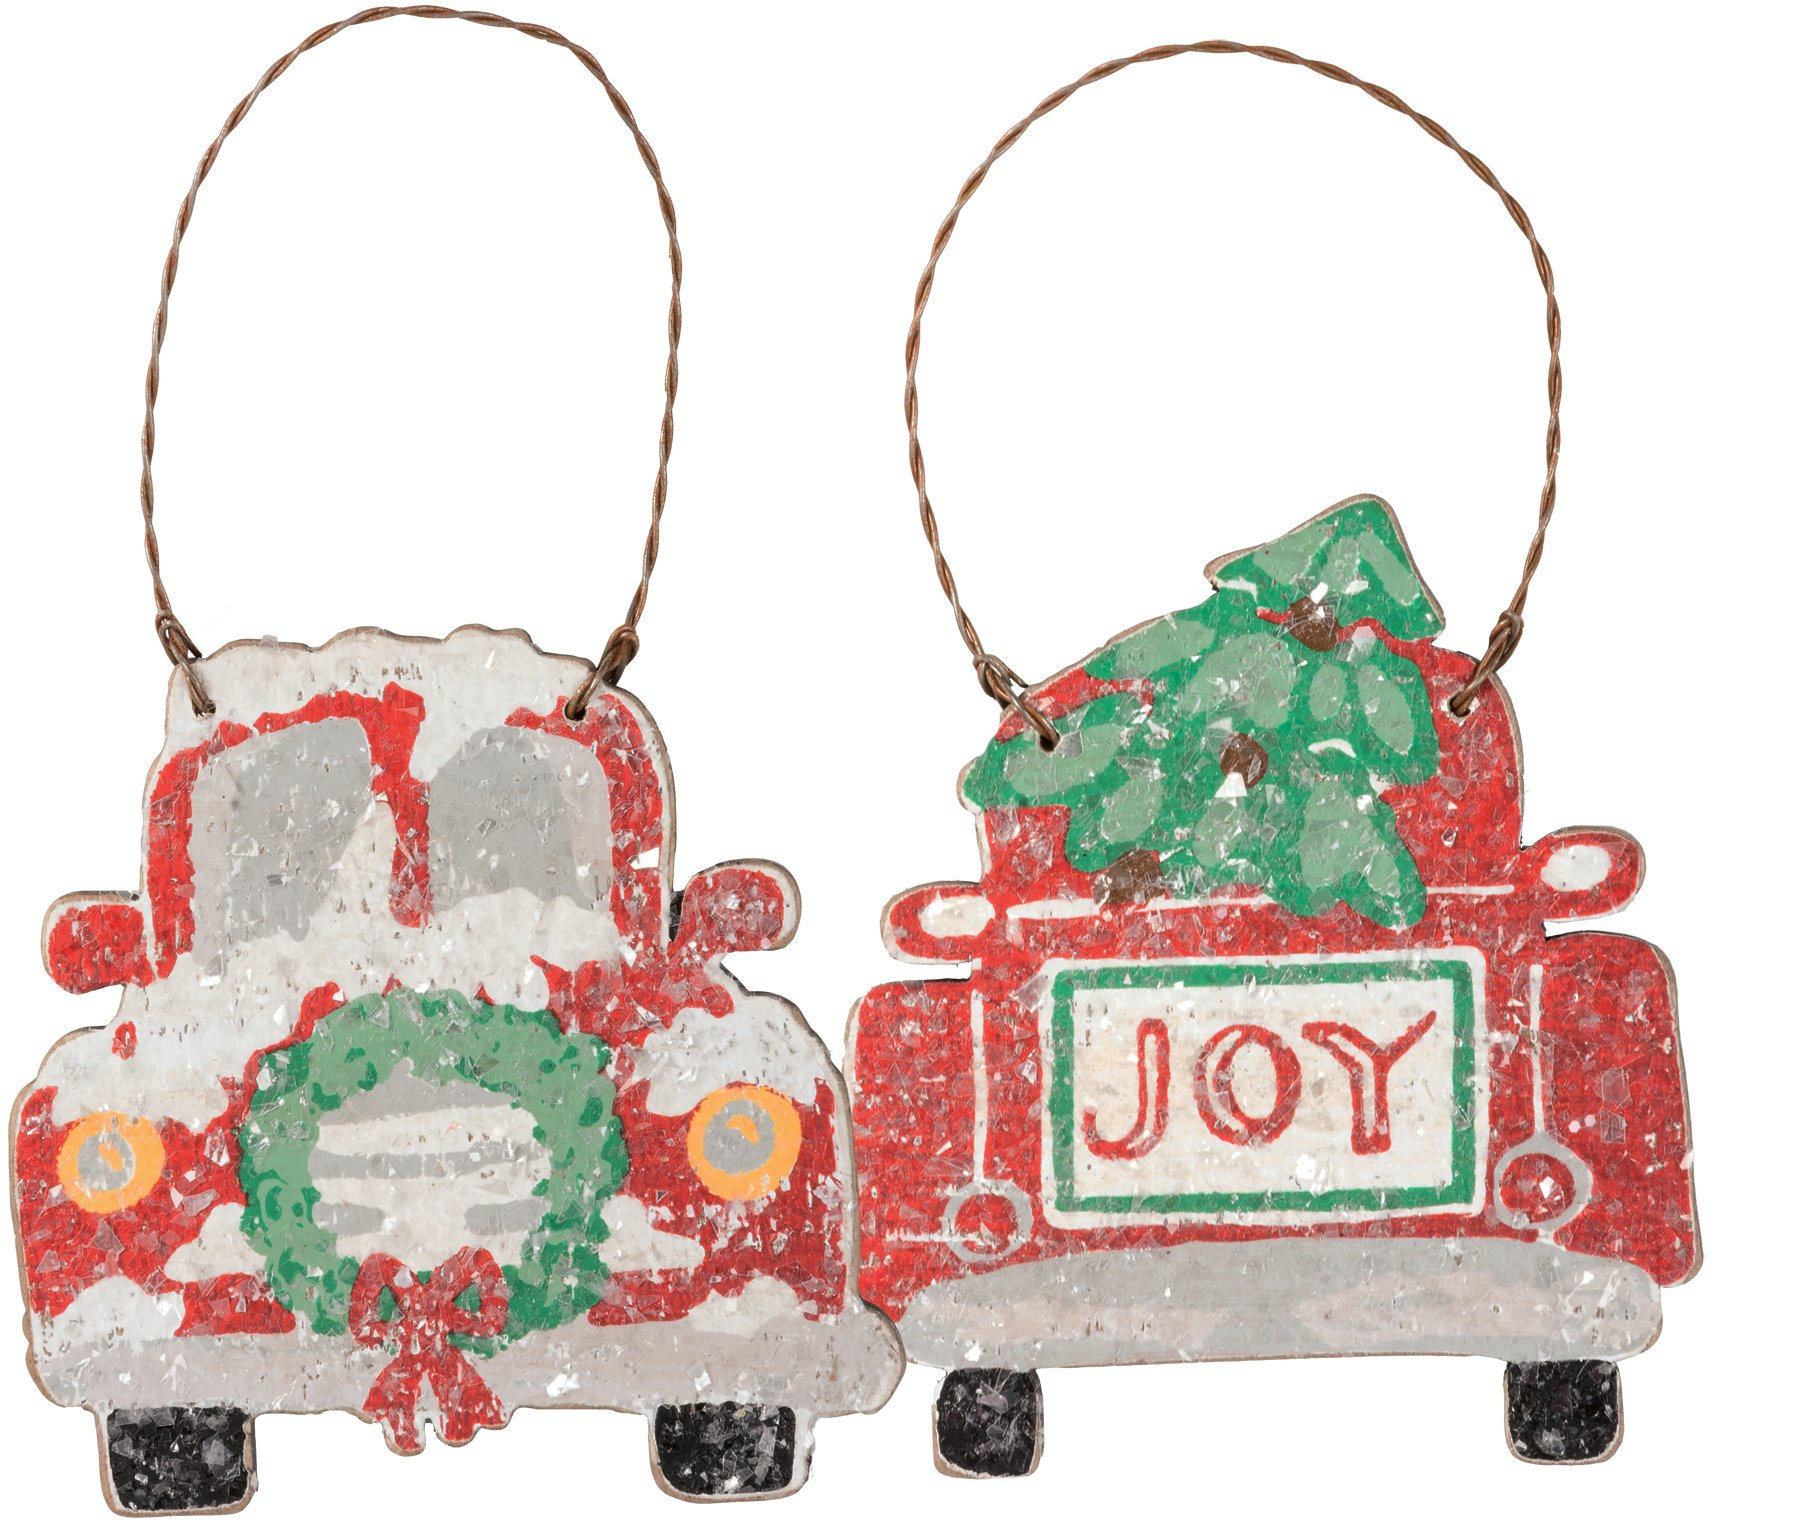 Primitives by Kathy Hand Lettered Trucks Wood Christmas Ornaments (Set of 2)